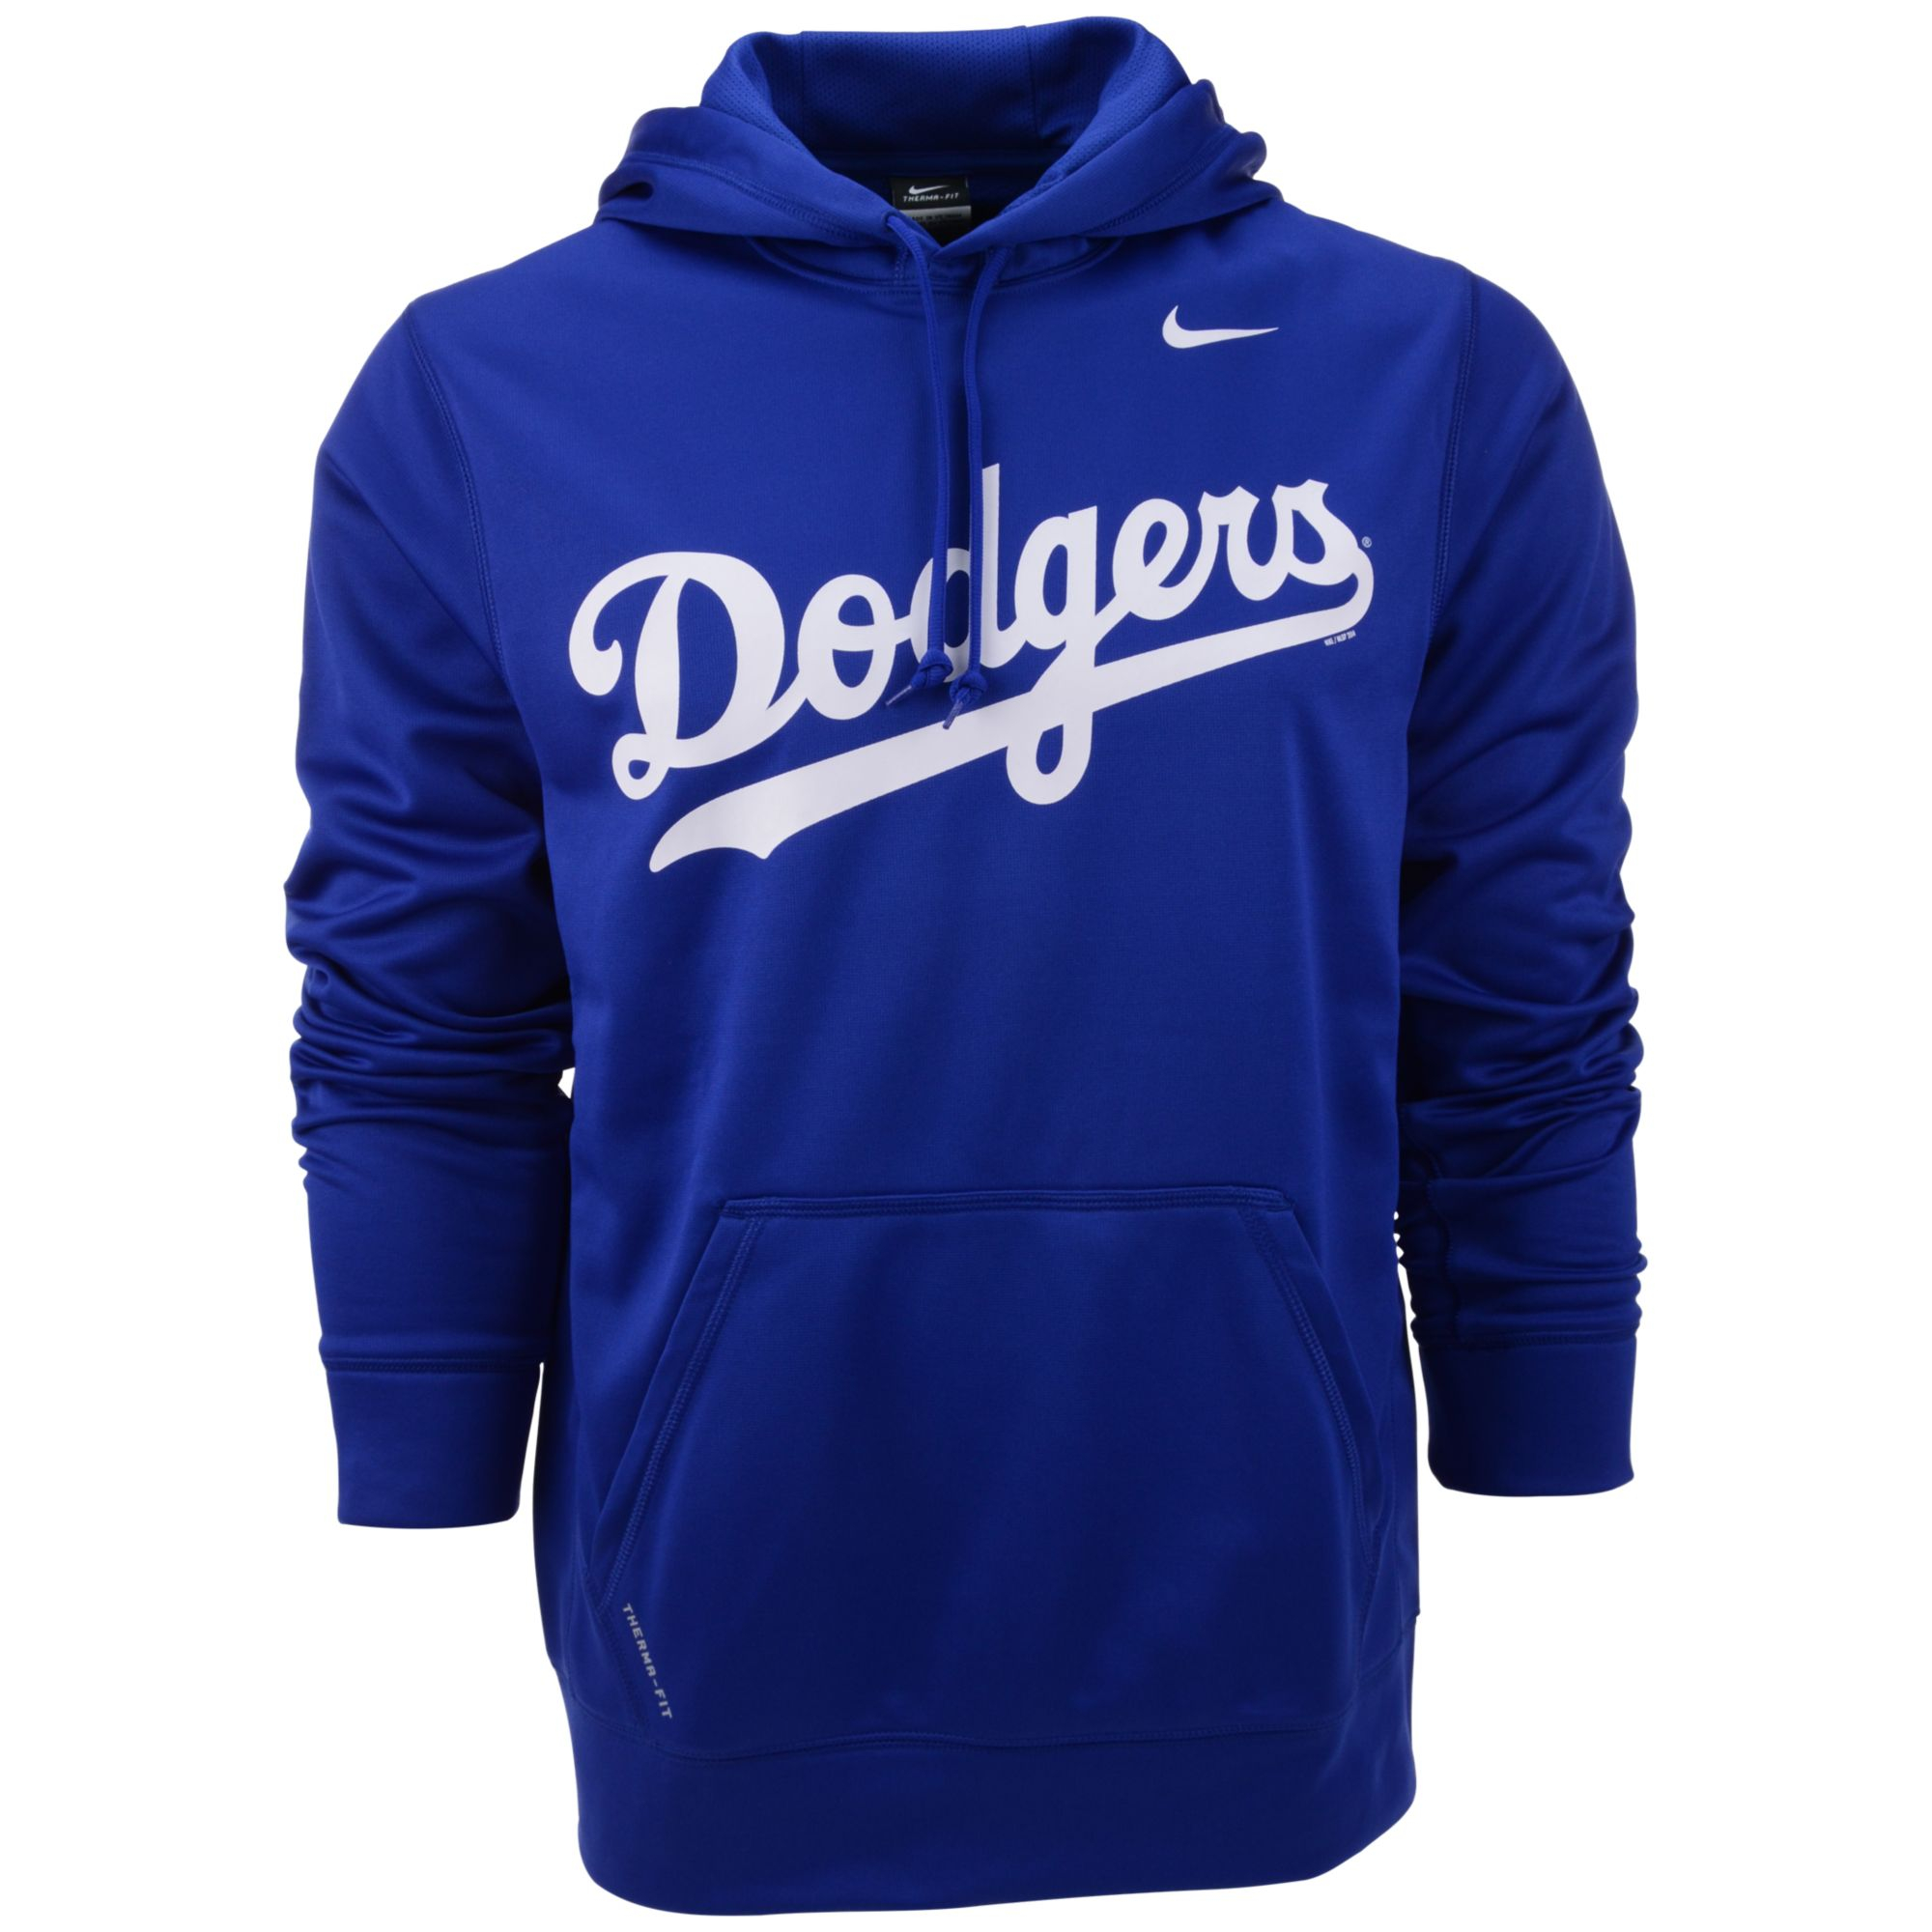 Nike Los Angeles Dodgers Performance Hooin Blue For